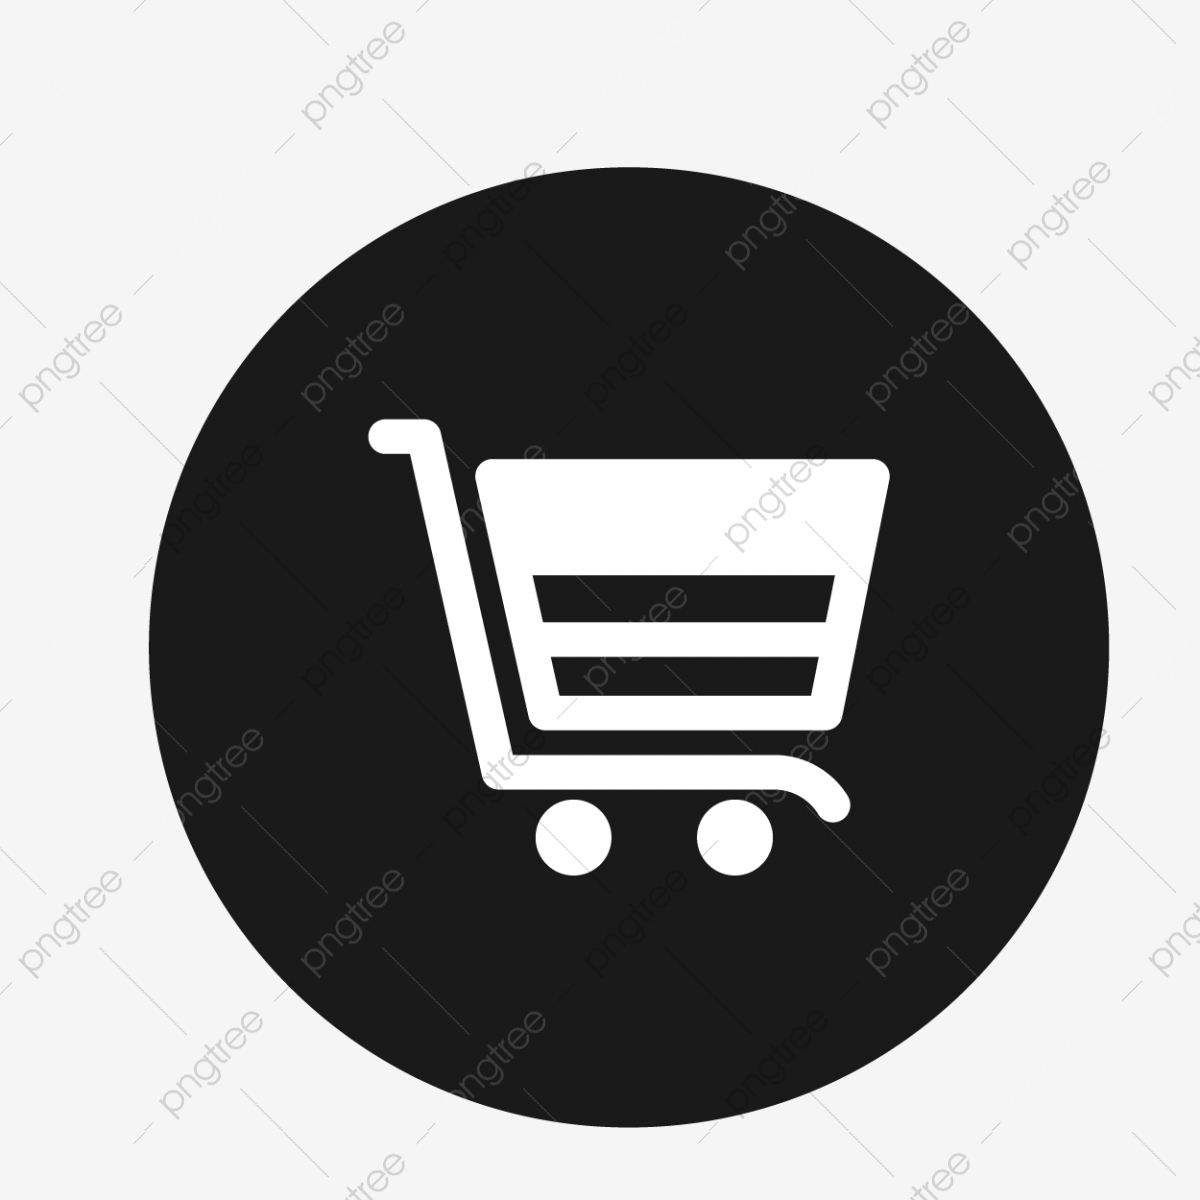 Shopee Png Images Vector And Psd Files Free Download On Pngtree